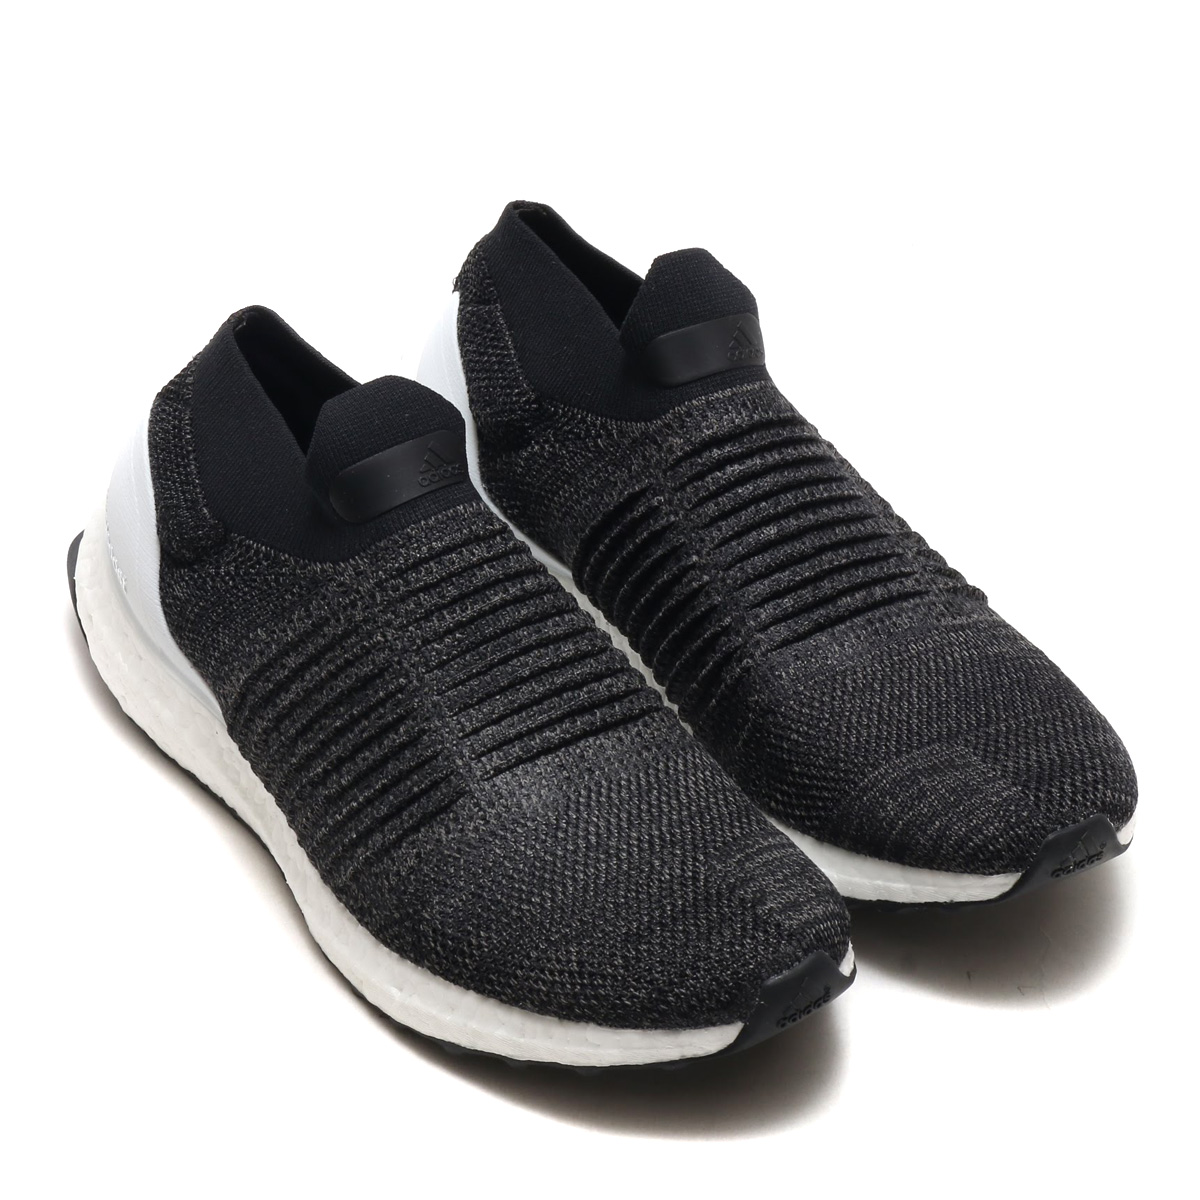 d9de3547d3f61 adidas UltraBOOST LACELESS (Adidas ultra boost race reply) (core black    core black   solar orange) 18SS-I